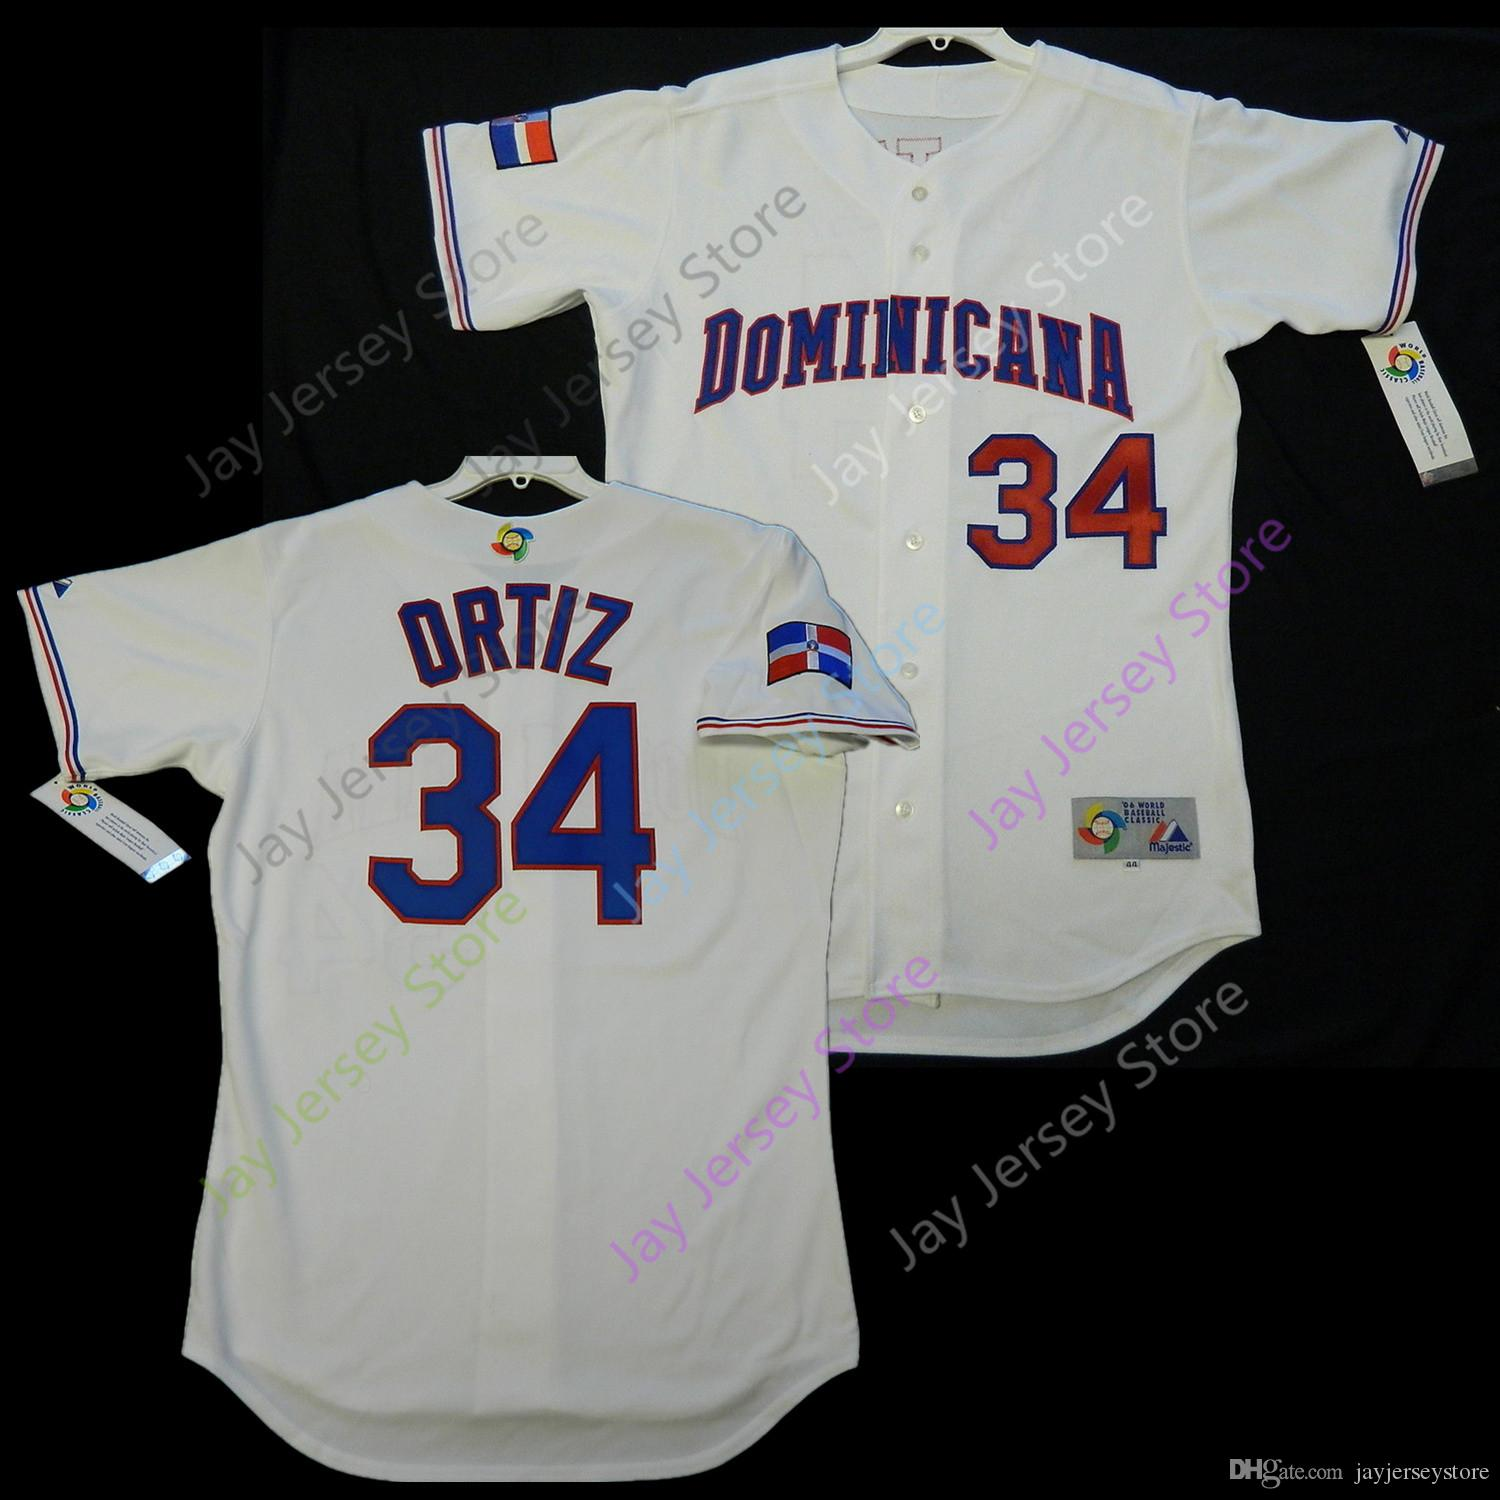 David Ortiz Dominican WBC 2006 World Baseball Classic Jersey Home White All  Stitched Size S-4XL David Ortiz Jersey Online with  43.79 Piece on ... c5dbe56f402